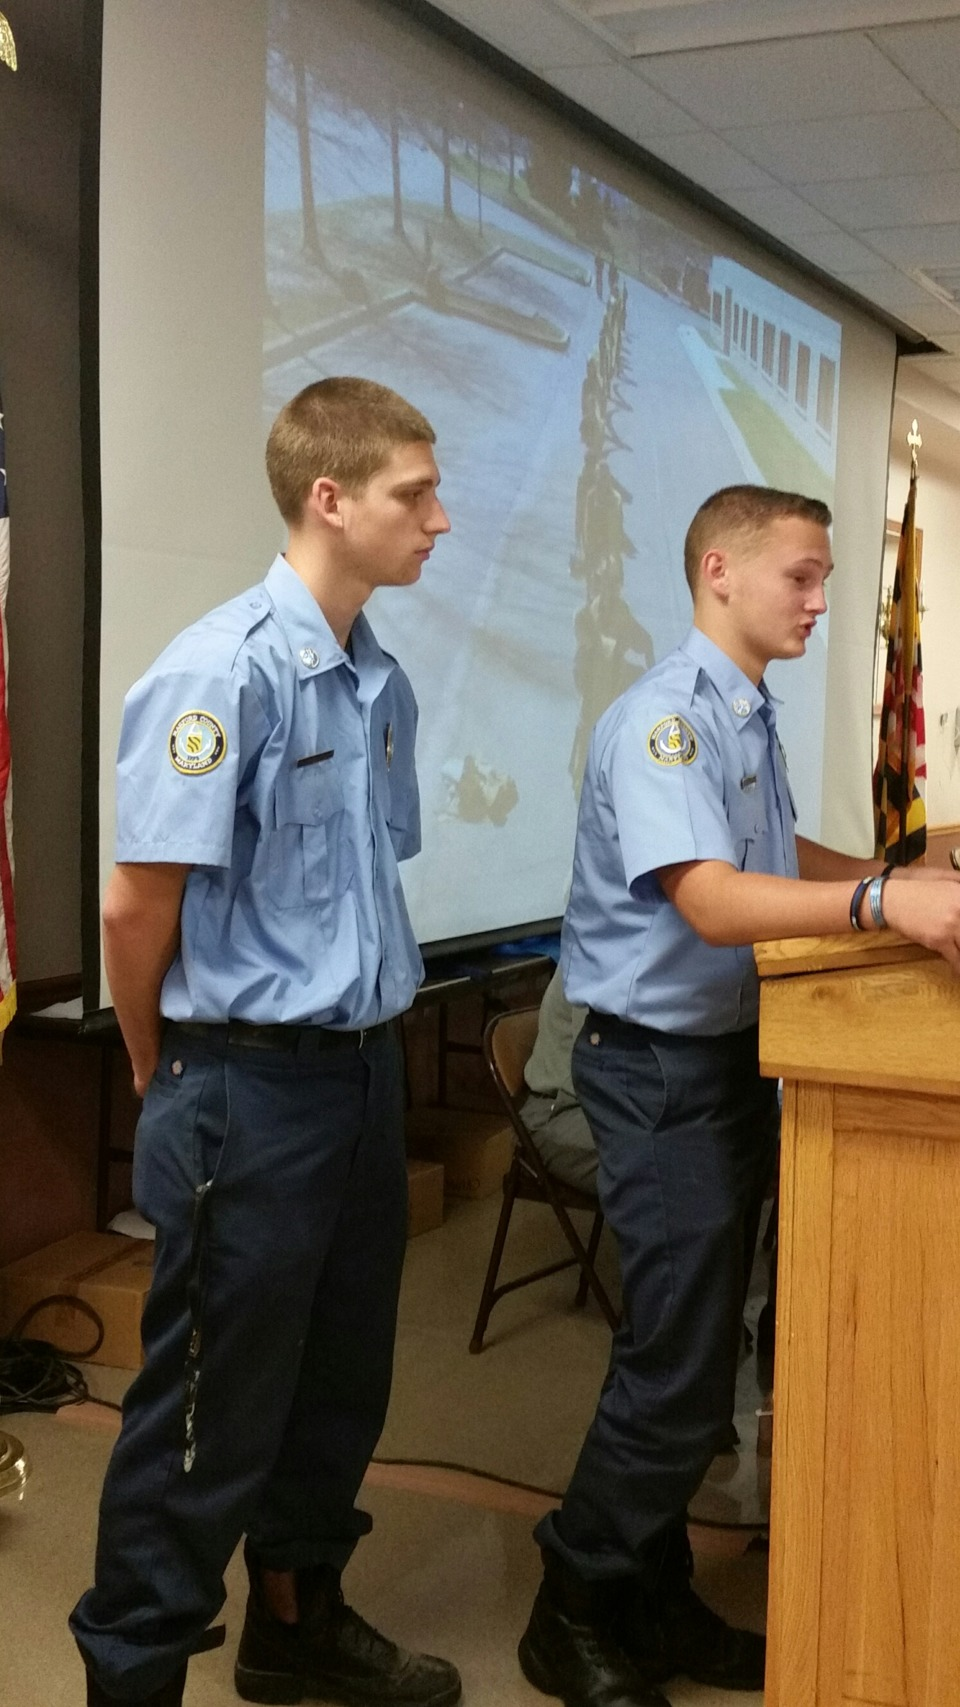 Various Issues Discussed at Cumberland Valley Firemen's